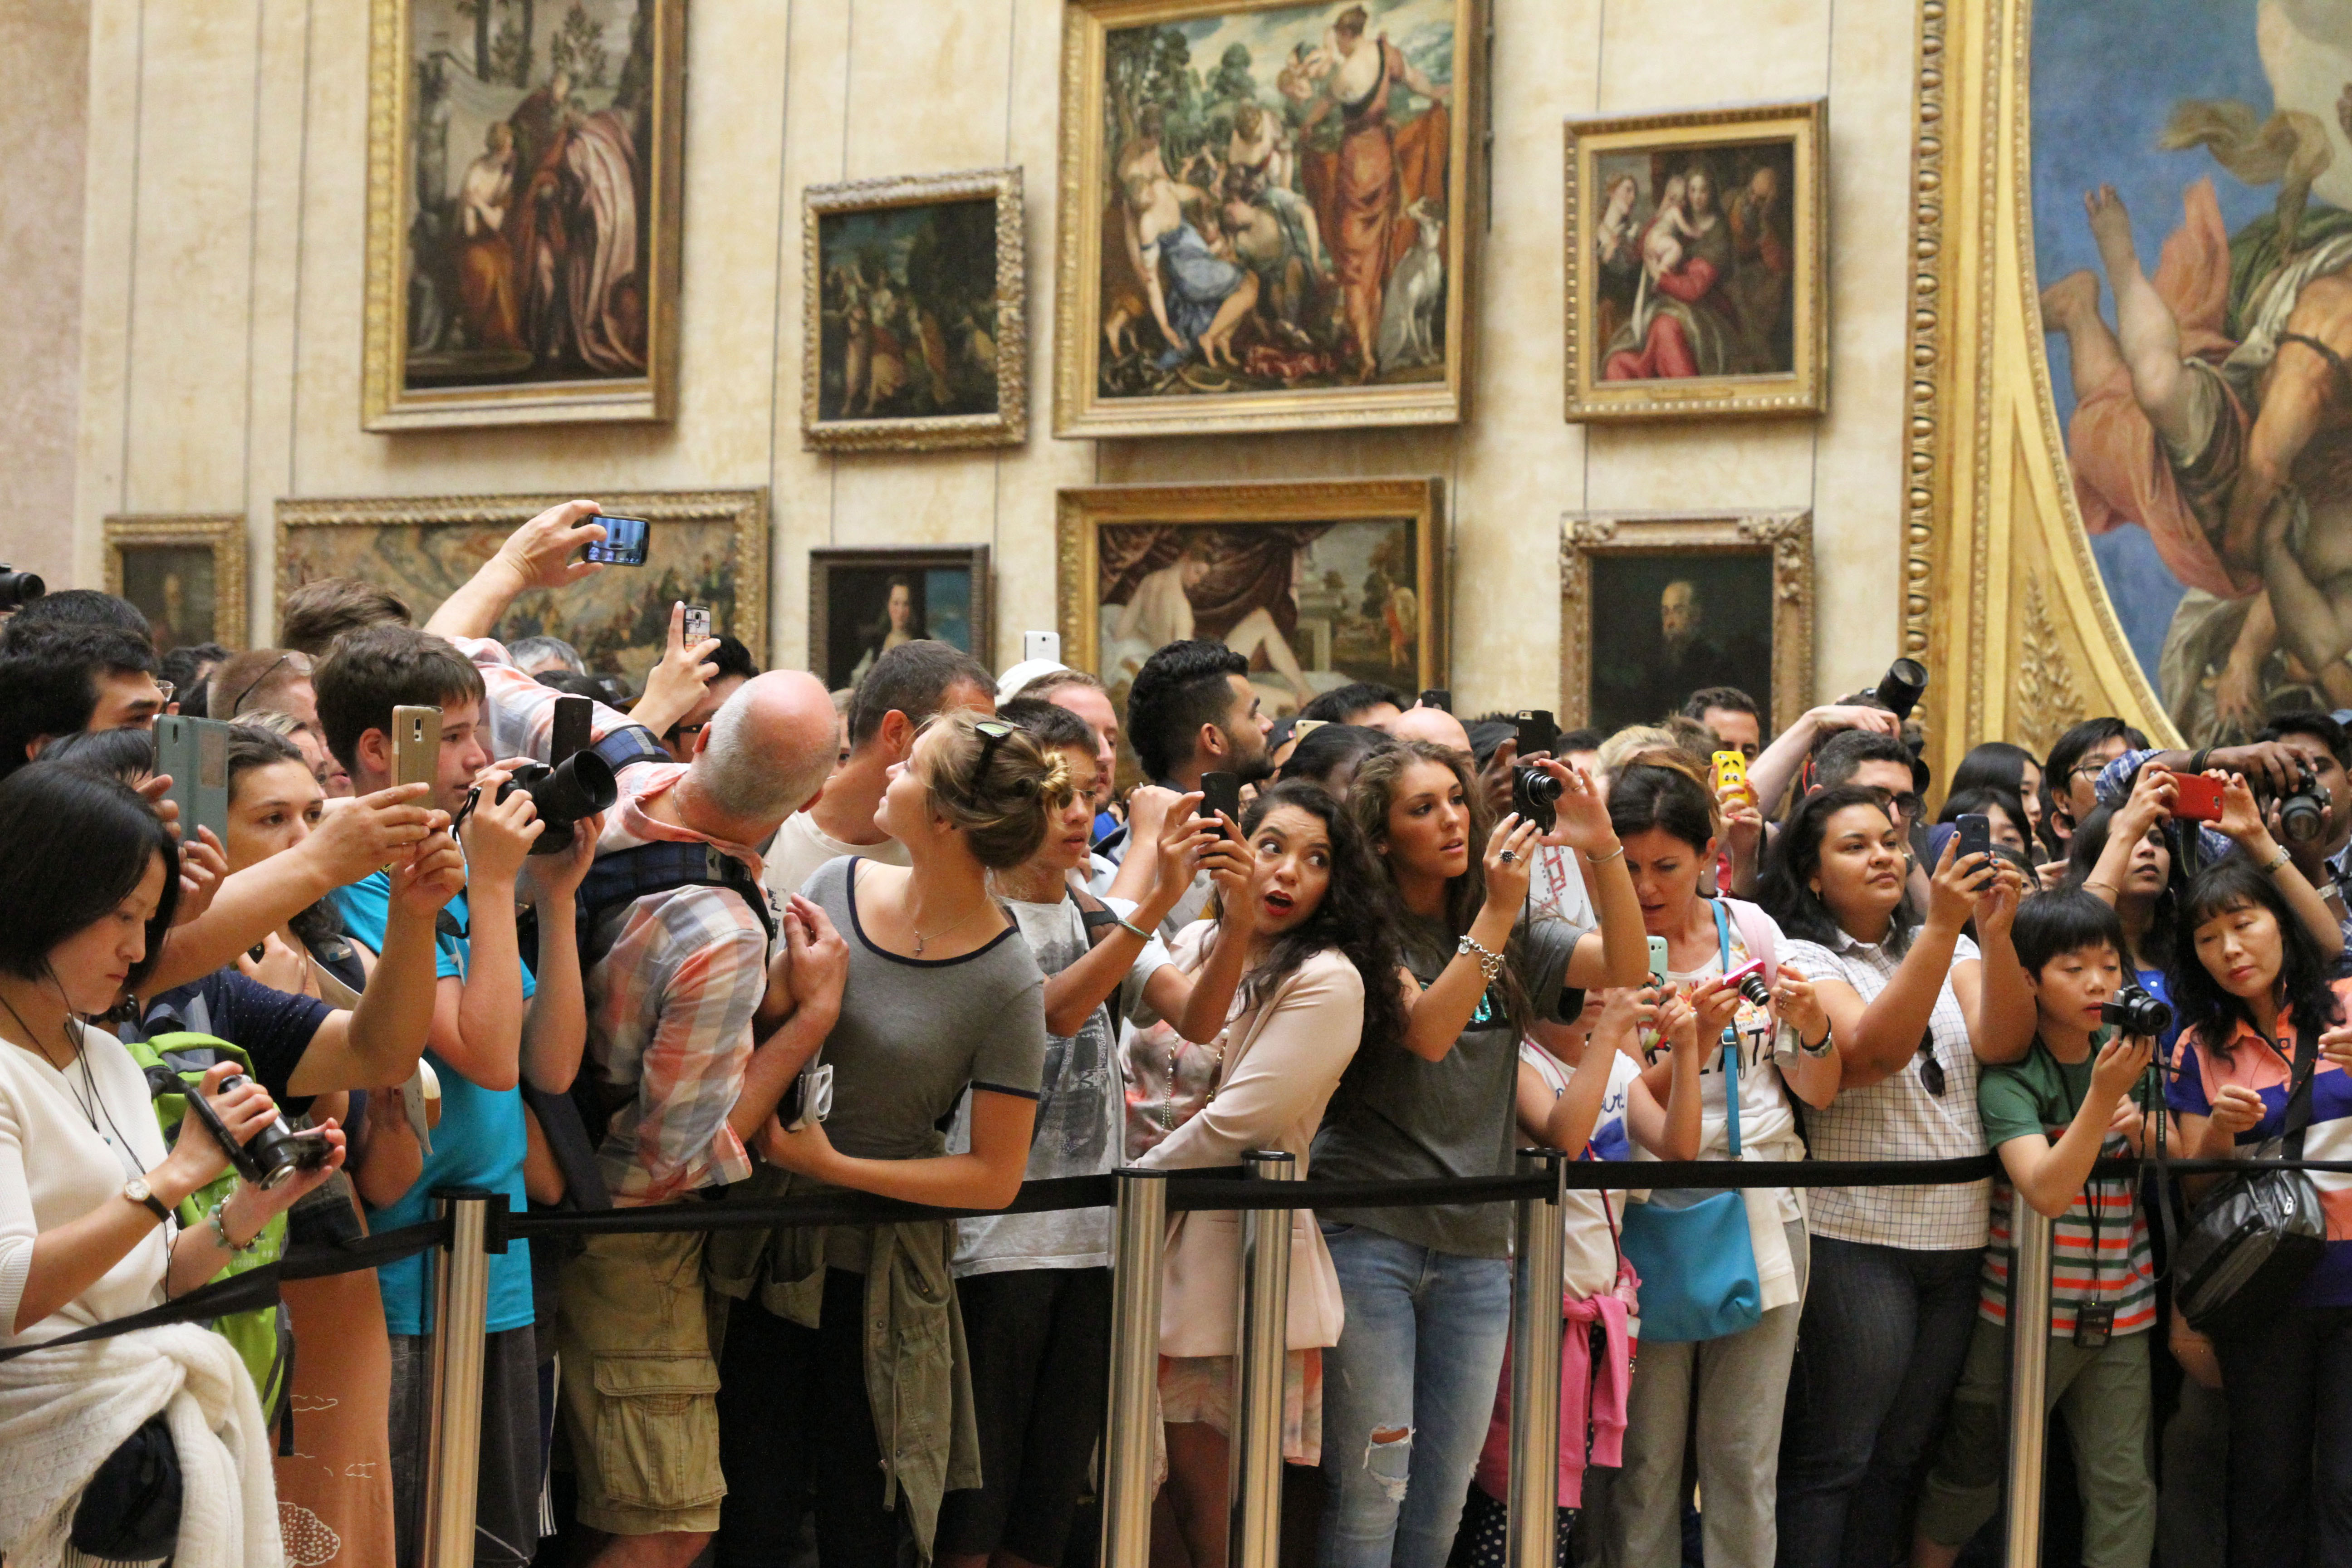 photograph by Hattie Miles ... August.2015 ... Paris ... (not) looking at the Mona Lisa